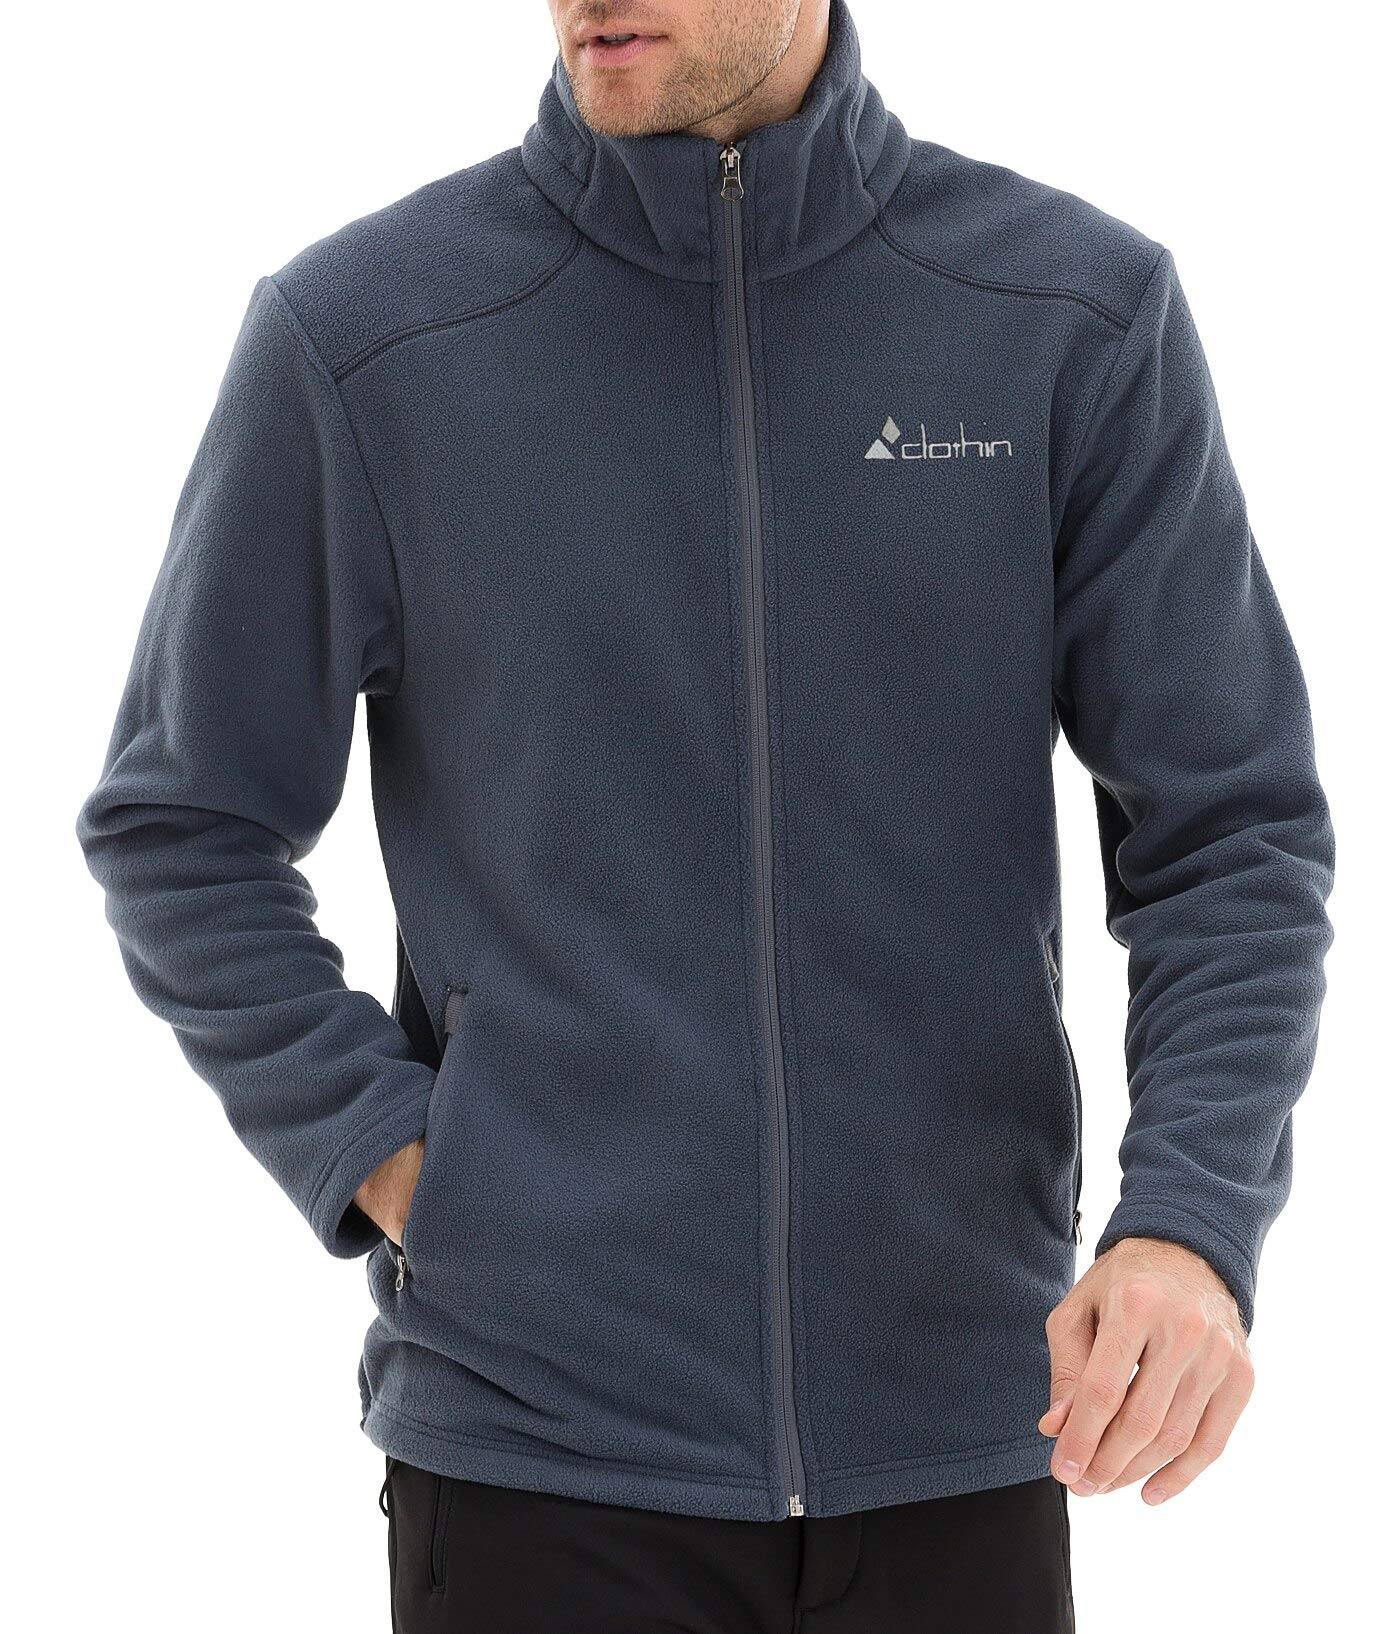 Clothin Men's Fleece Jacket Full-Zip Lightweight Jacket